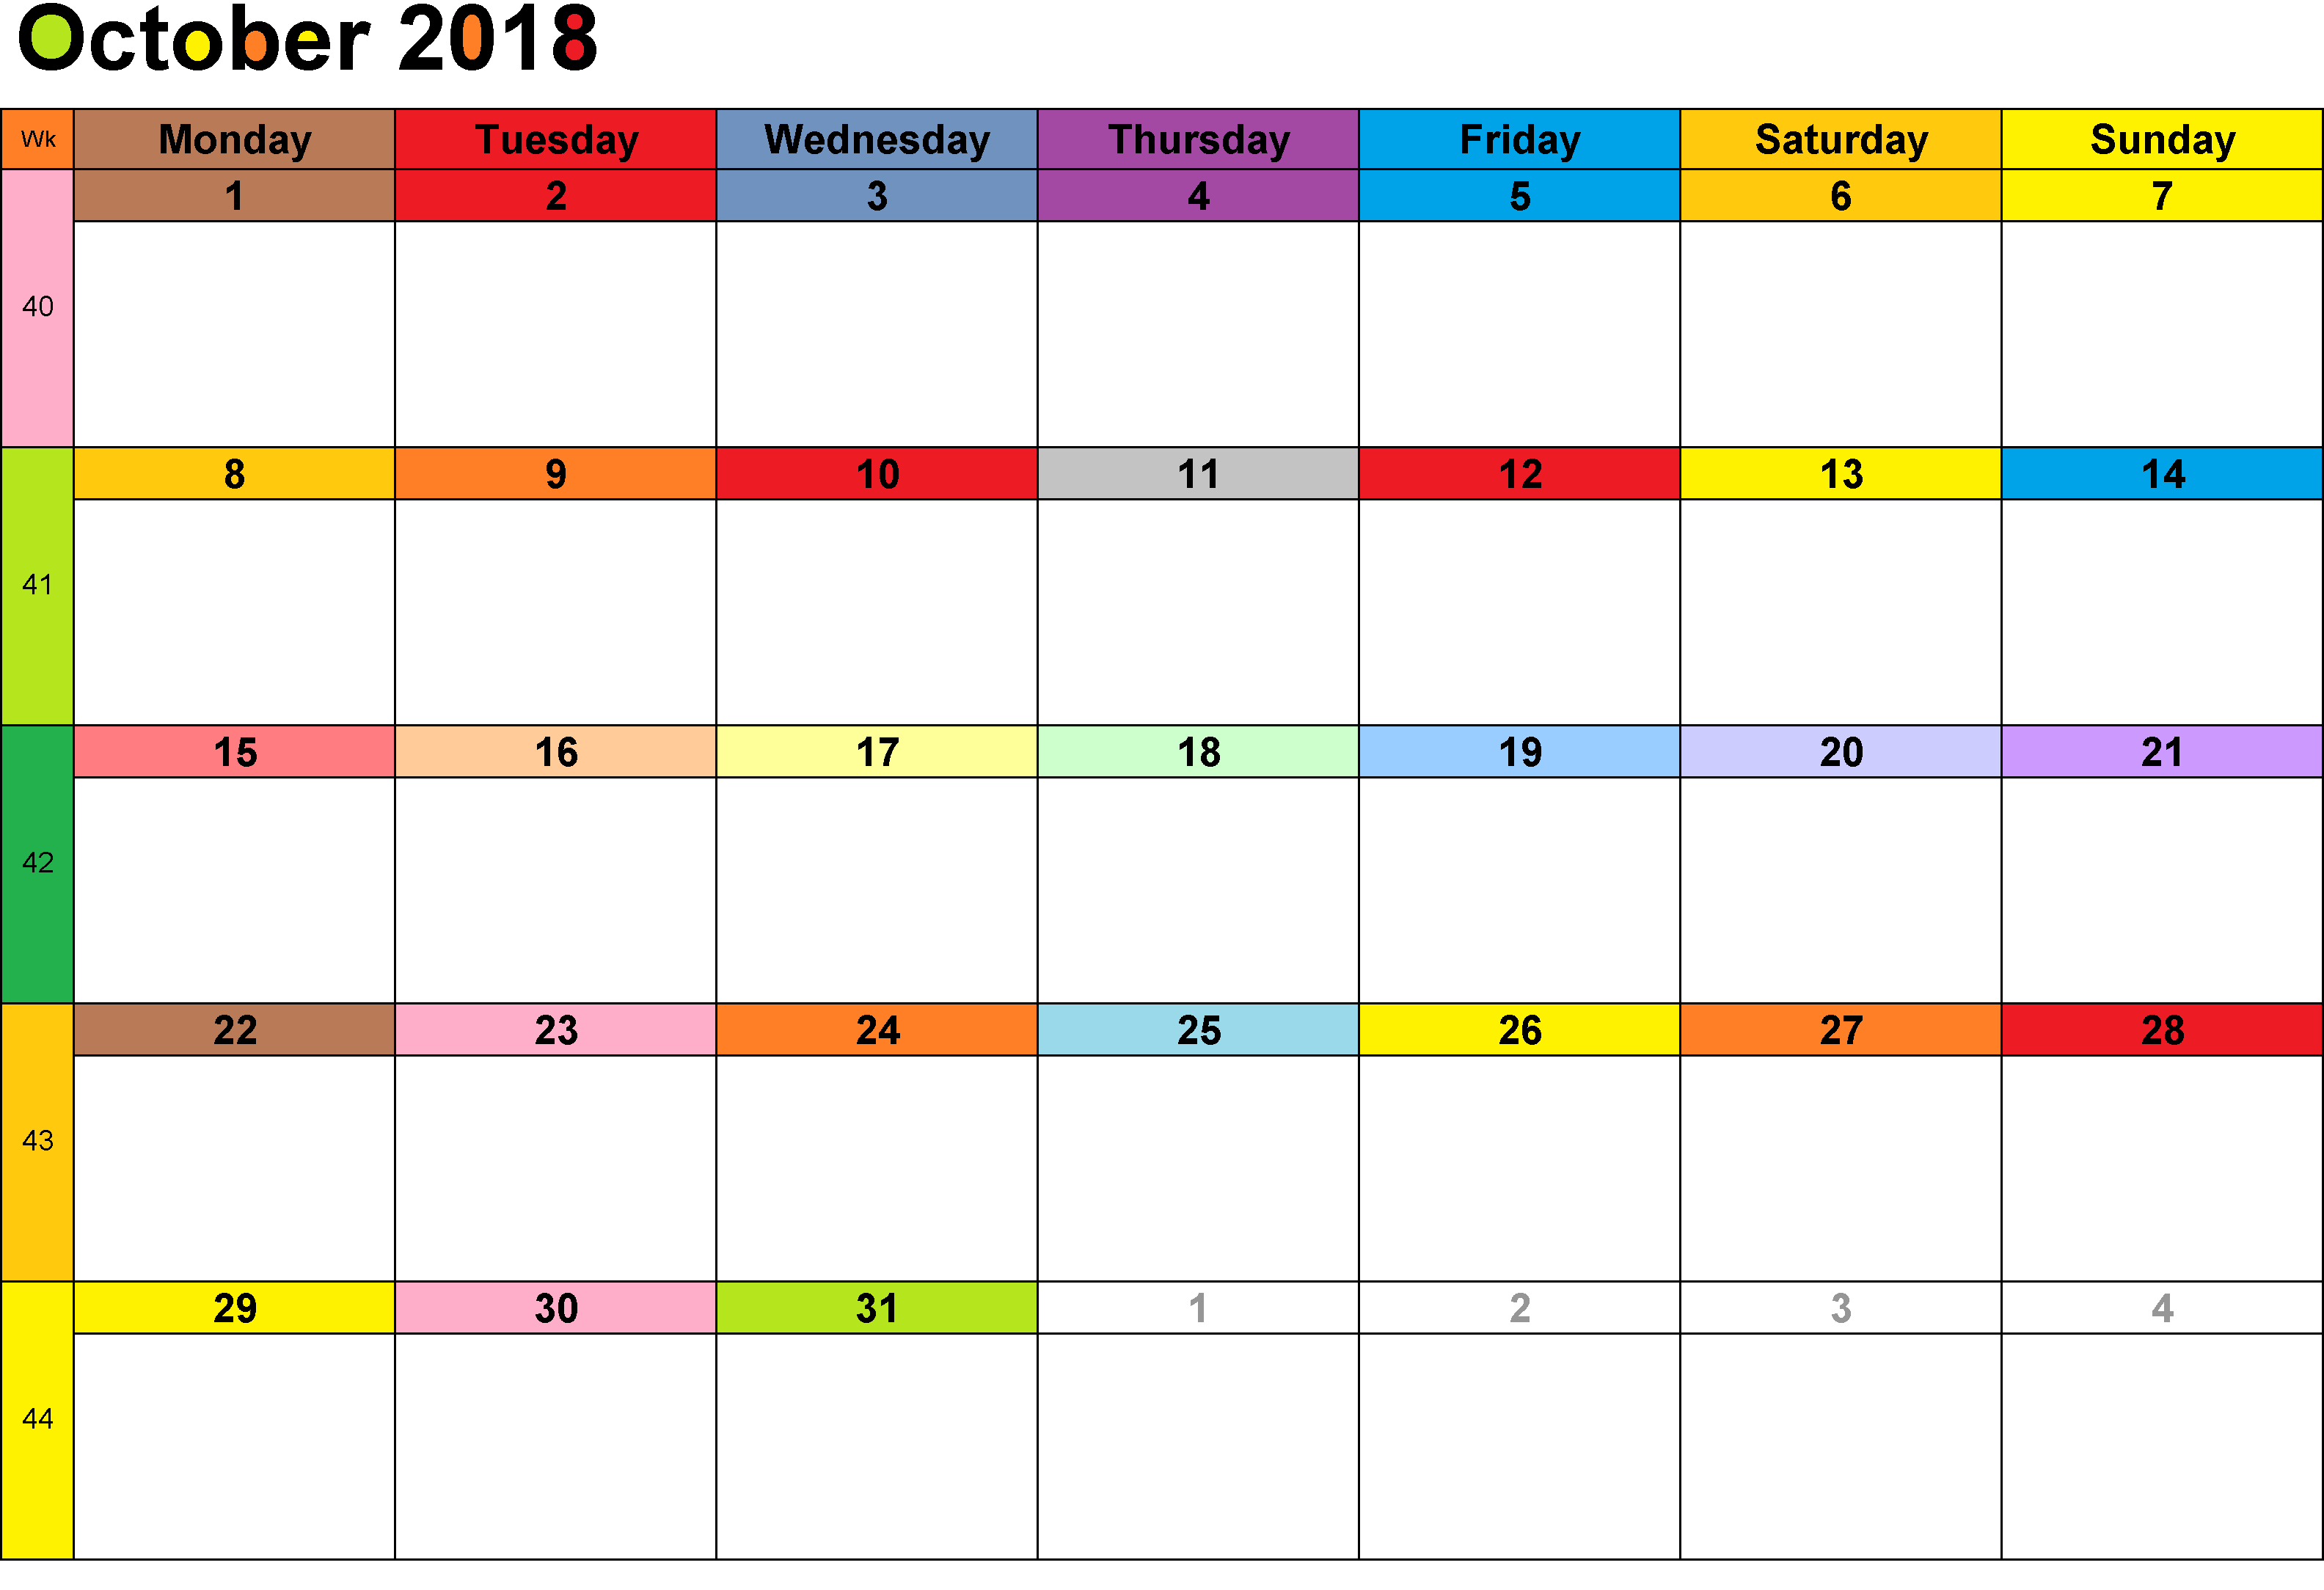 October 2018 Calendar Spanish Holidays